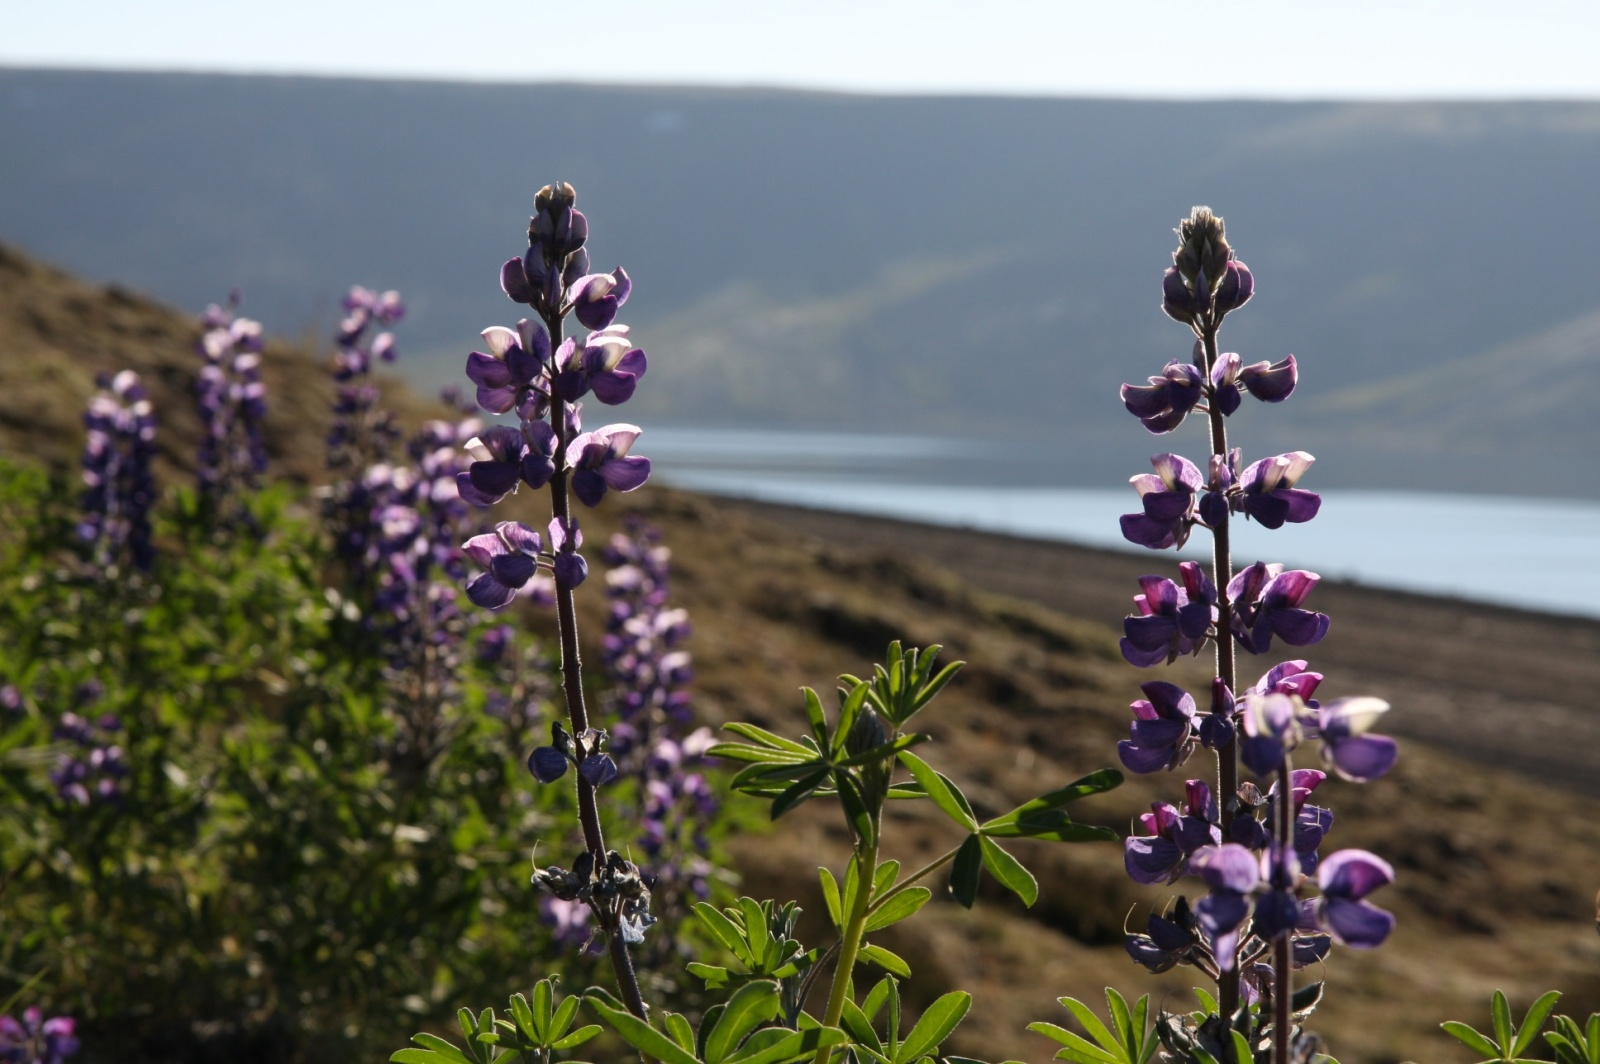 Alaskan lupine, introduced to Iceland in 1945, in many places is the only plant that can survive such harsh conditions